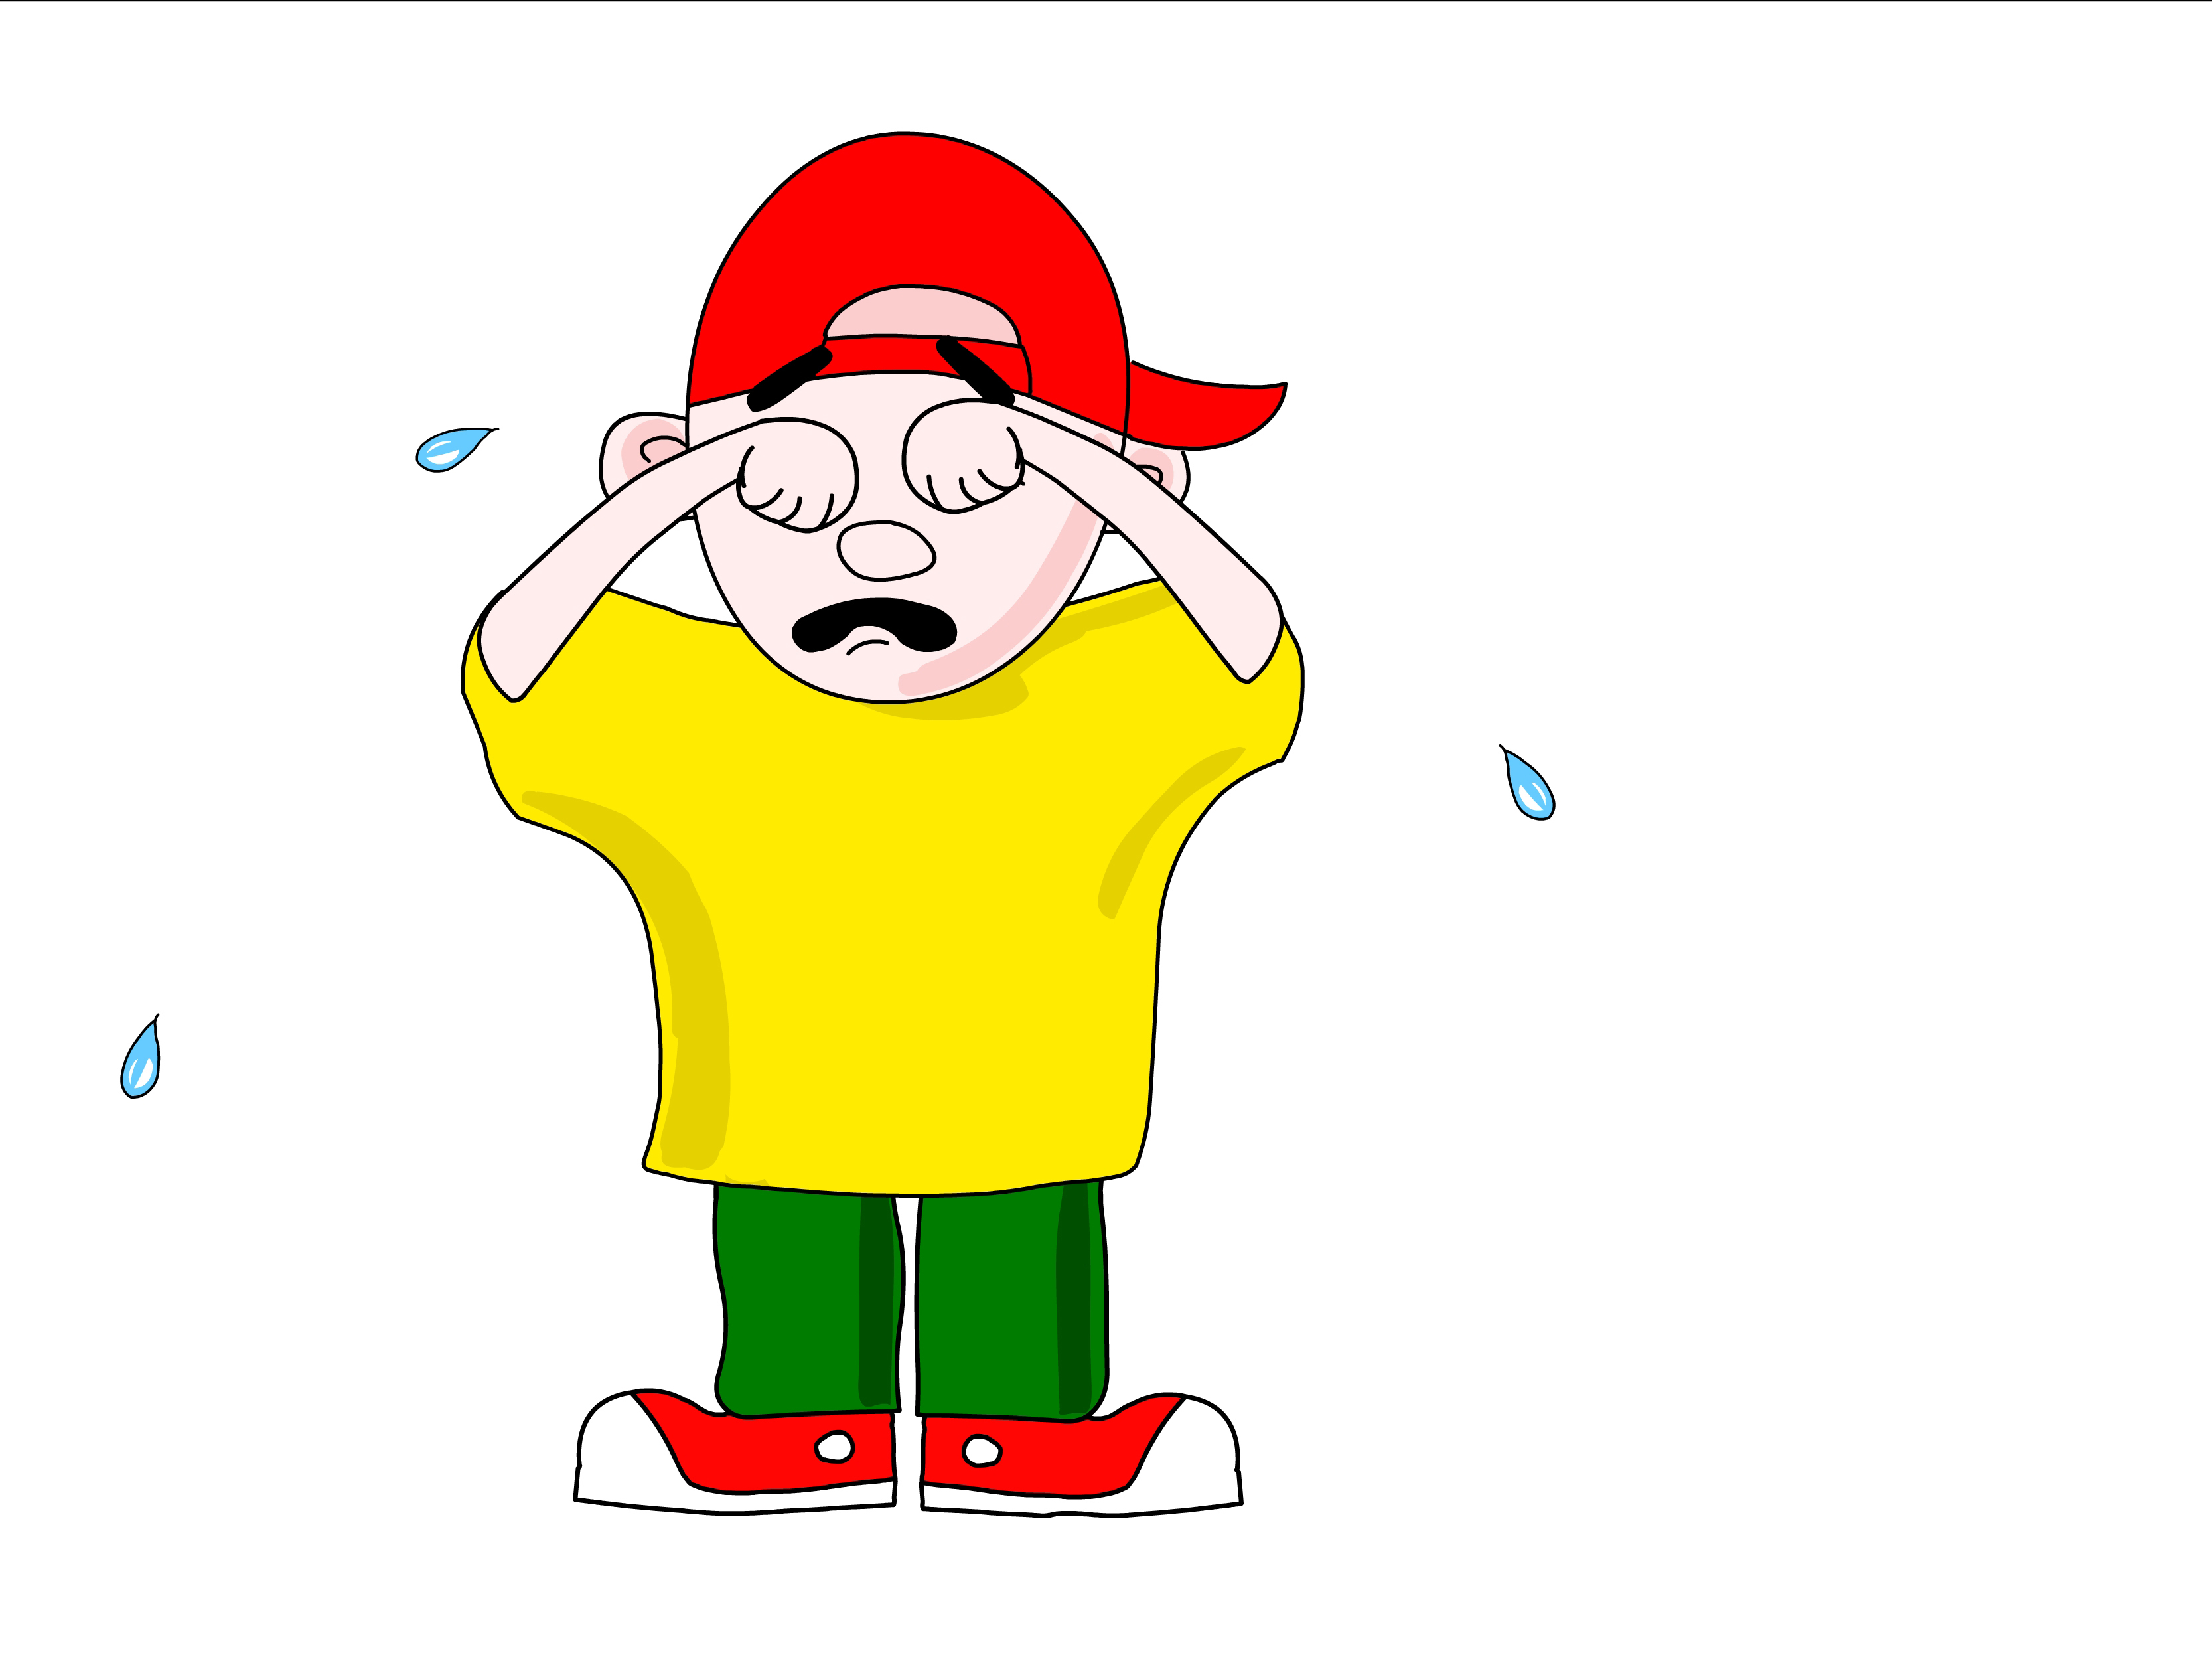 A Cartoon People Crying - ClipArt Best